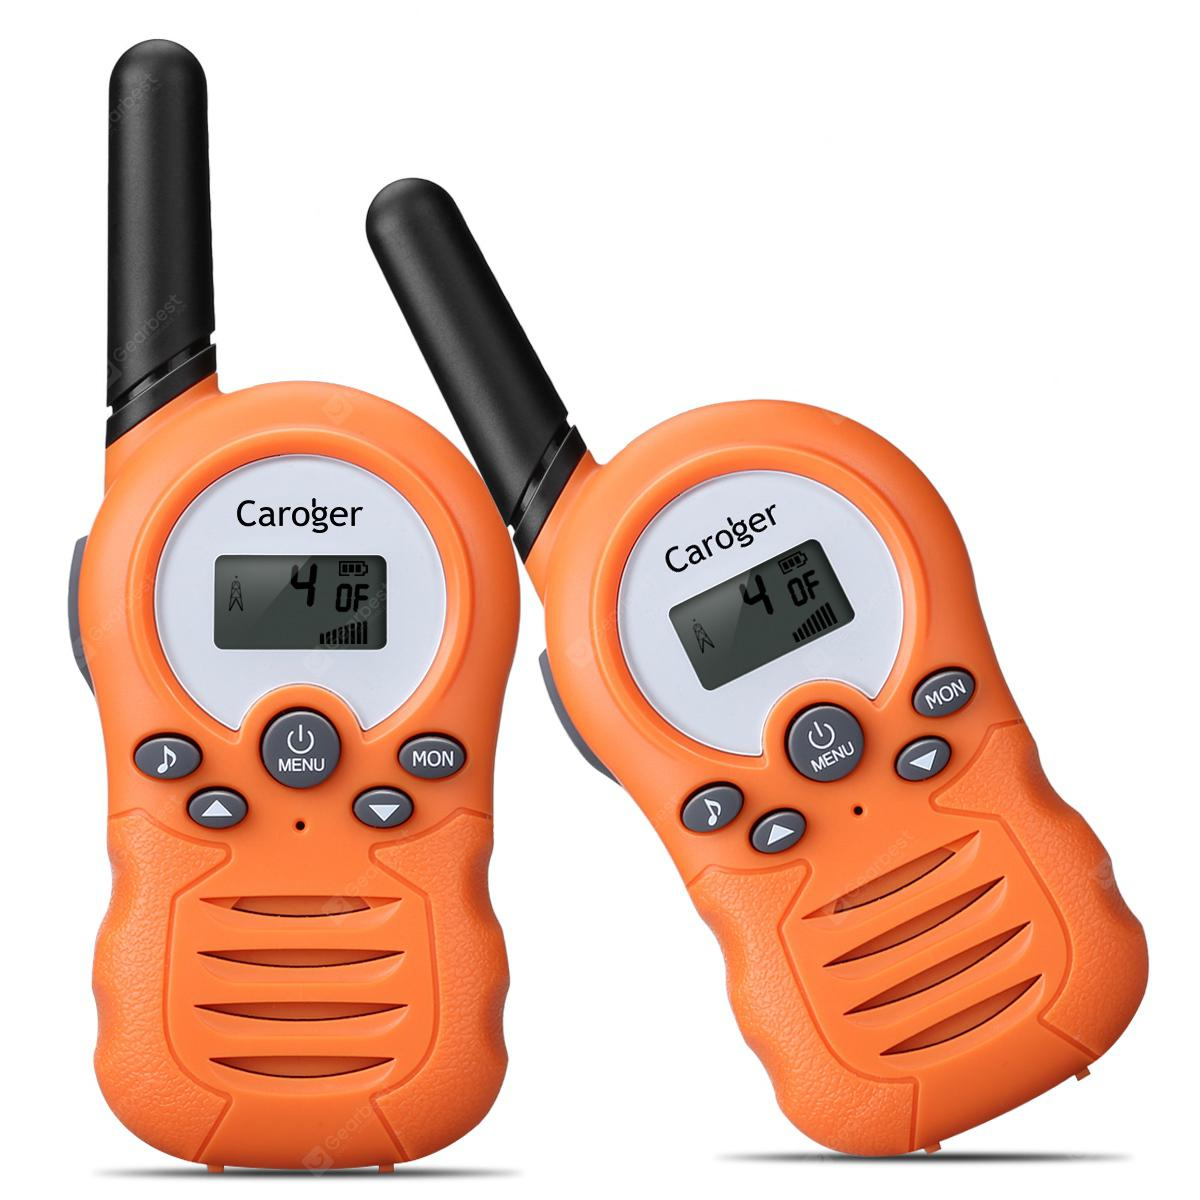 Caroger CR388A License-Free Walkie Talkies 22packs 2 Channel FRS / GMRS 462 / 467MHZ Tveir Way Radio Allt að Mælir 3300 / 2 Miles Range Handheld Interphone Orange -? ORANGE Papaya